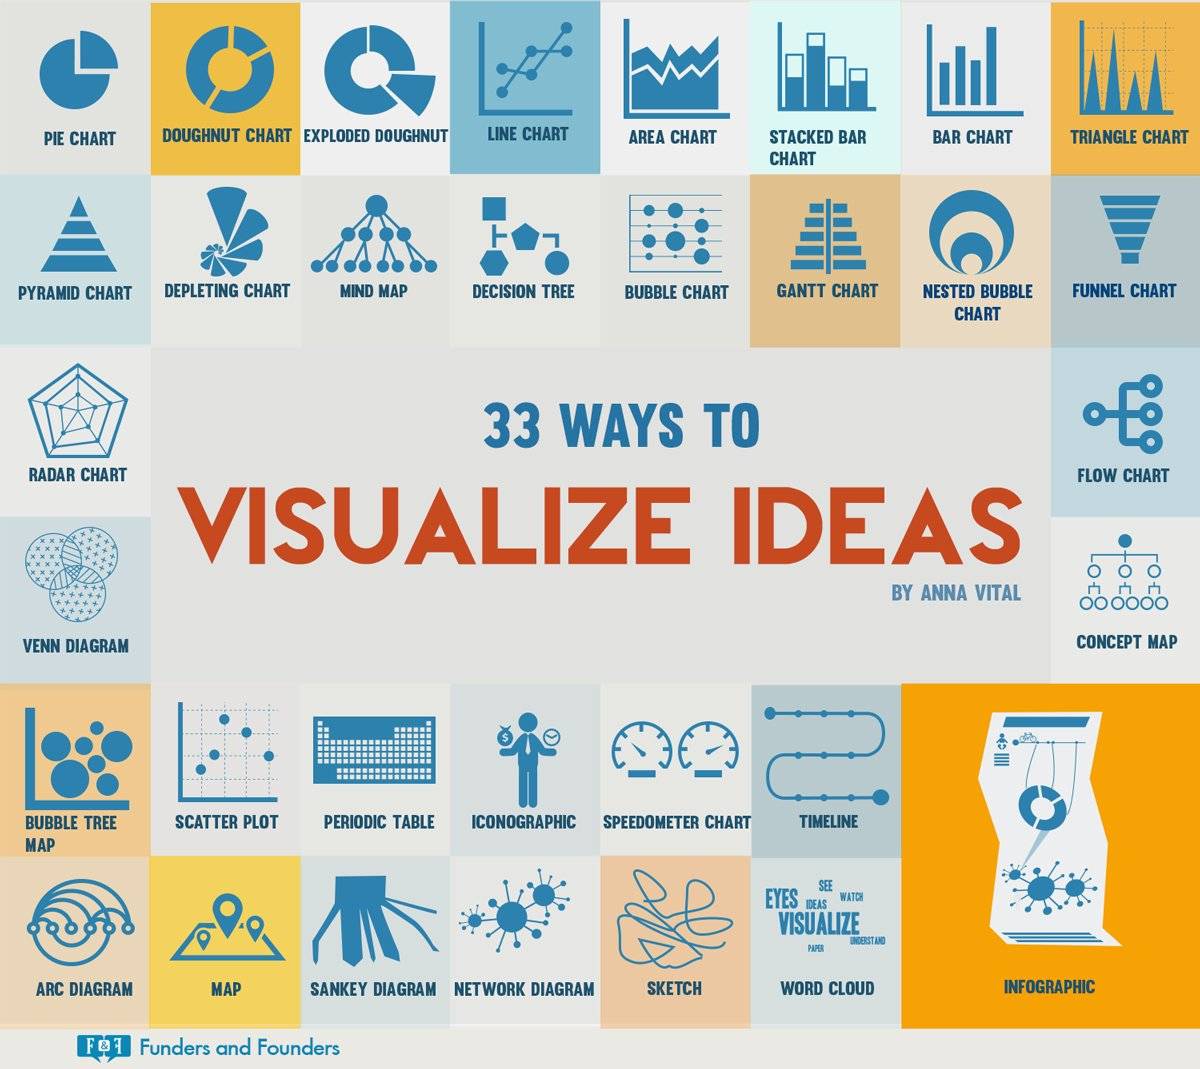 Here's a fantastic #Infographic cheat-sheet for Data Visualization by Anna Vital https://t.co/1xBrntPJeK